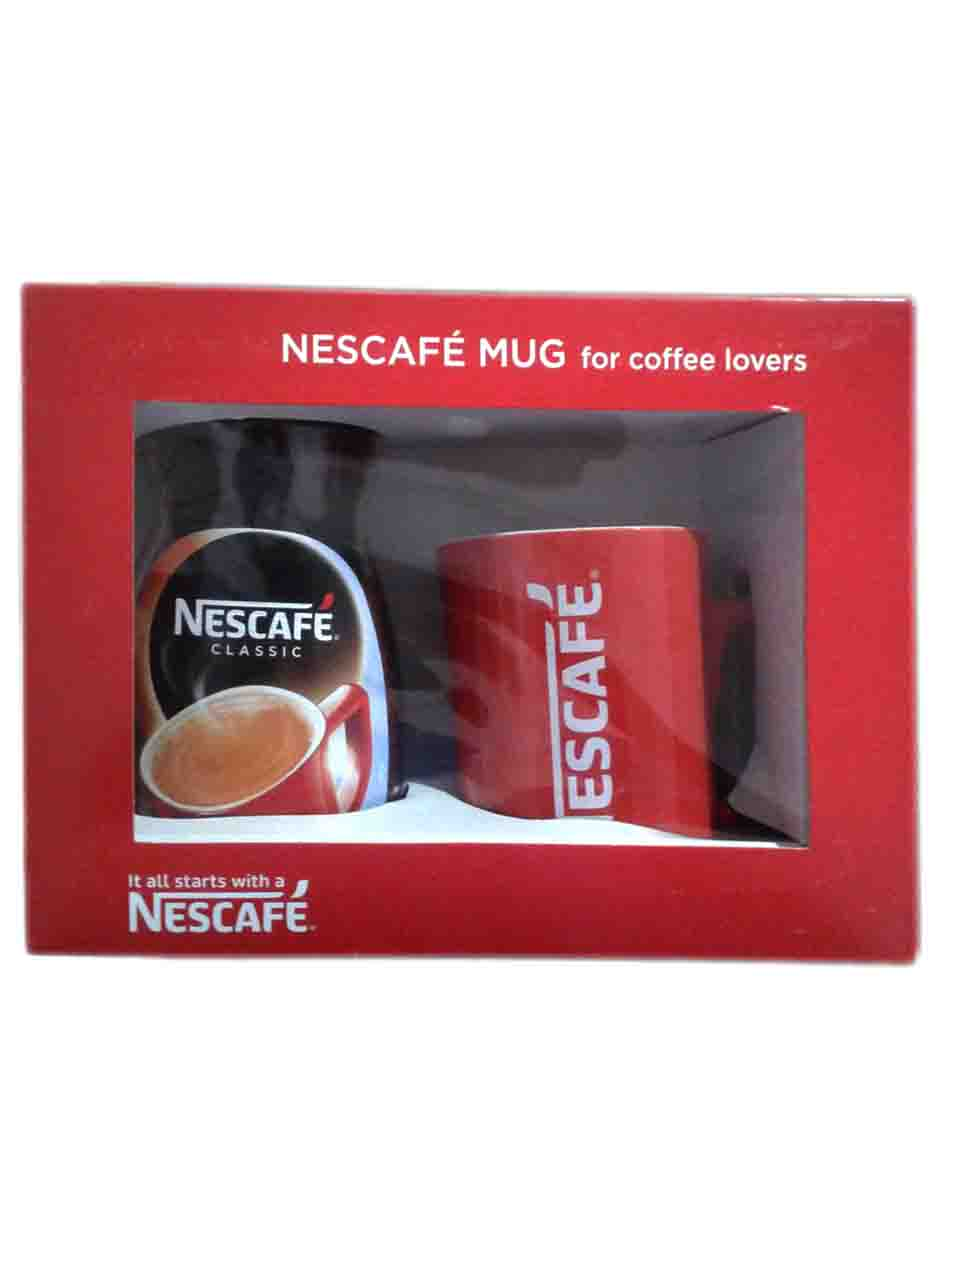 Nescafe Classic Coffee Bottle 100gm Mug Promo